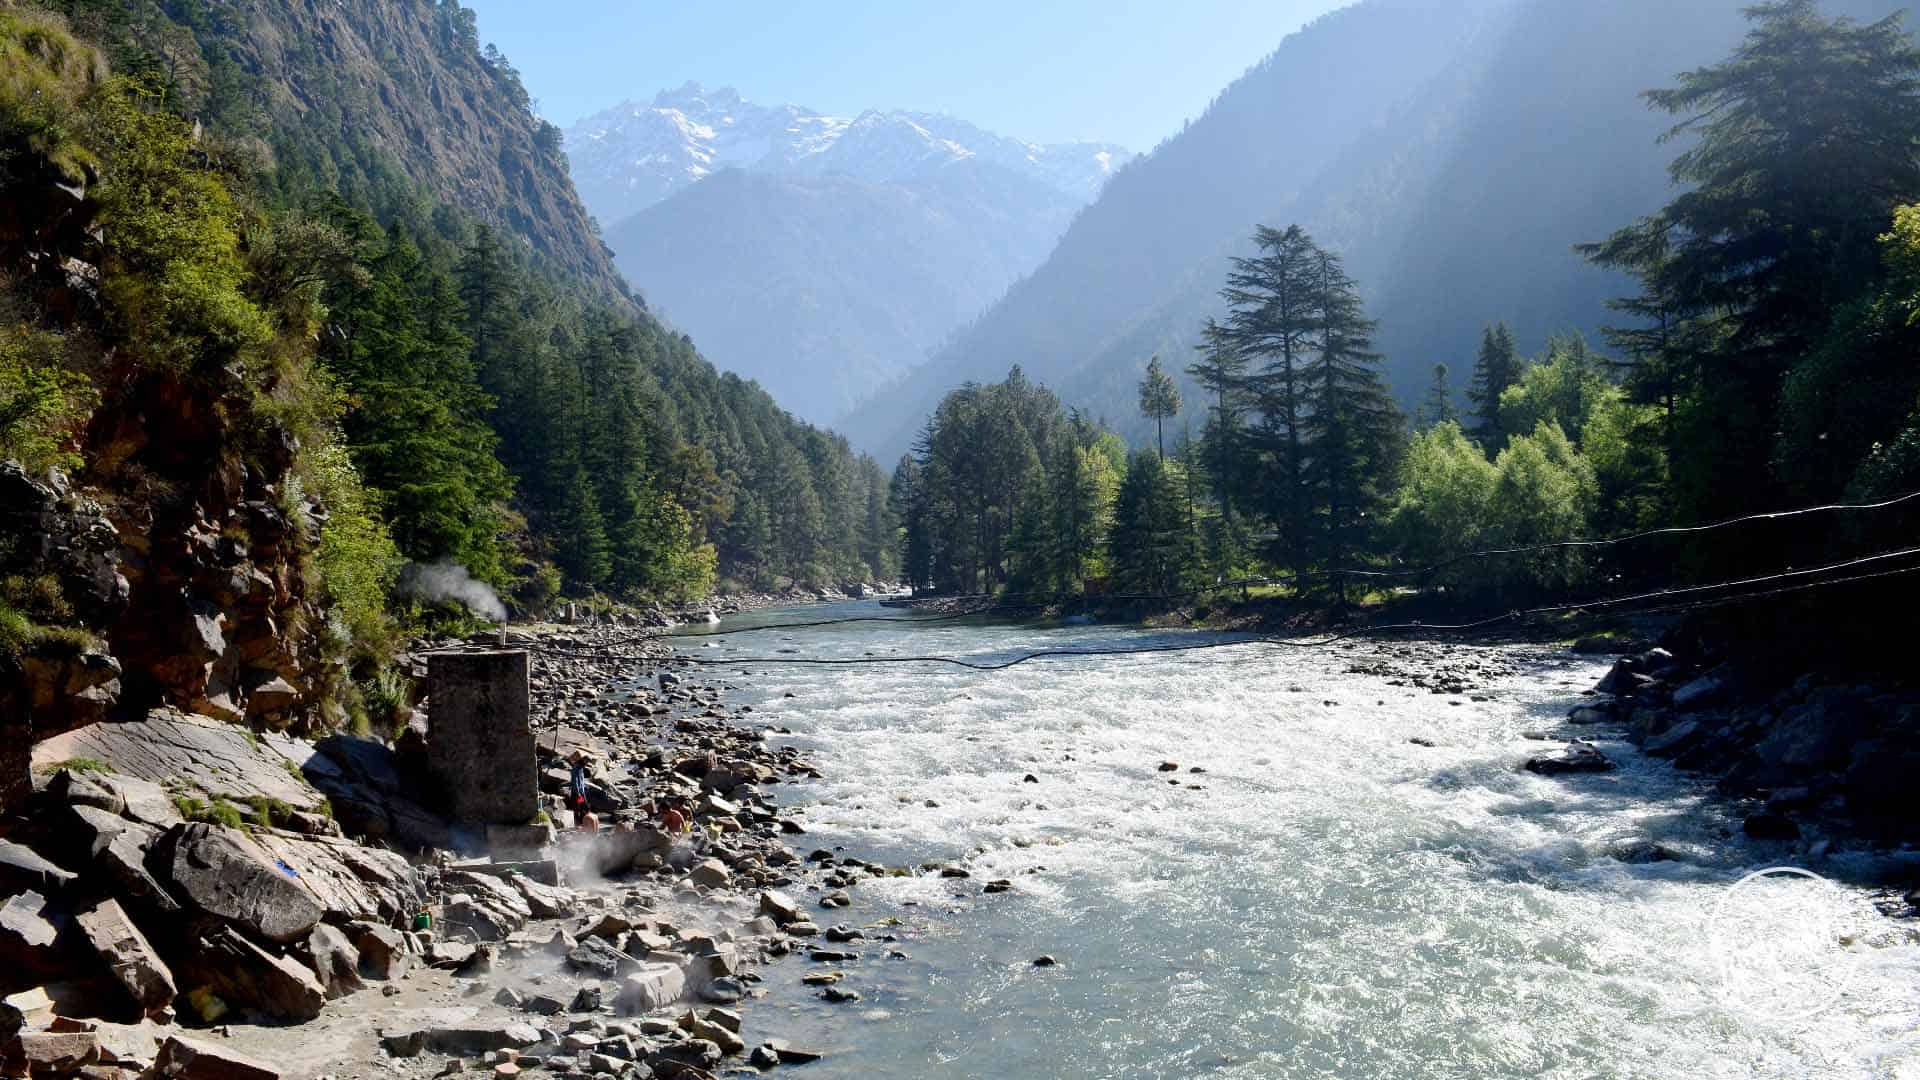 Grahan Village Trekking - Parvati river